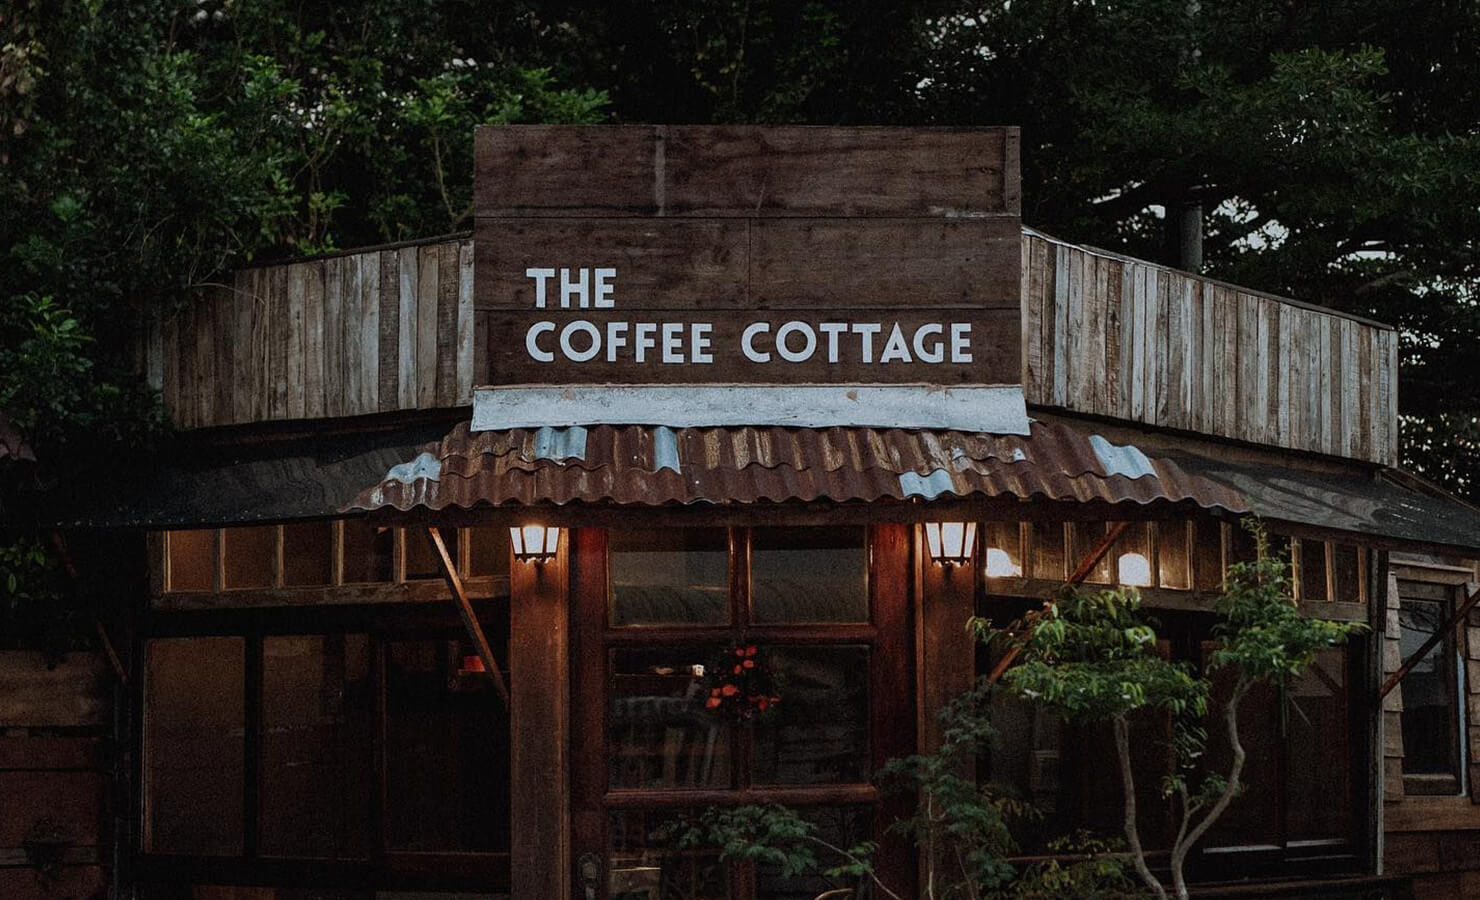 bloomthis-hidden-gems-in-malaysia-04-the-coffee-cottage-penang